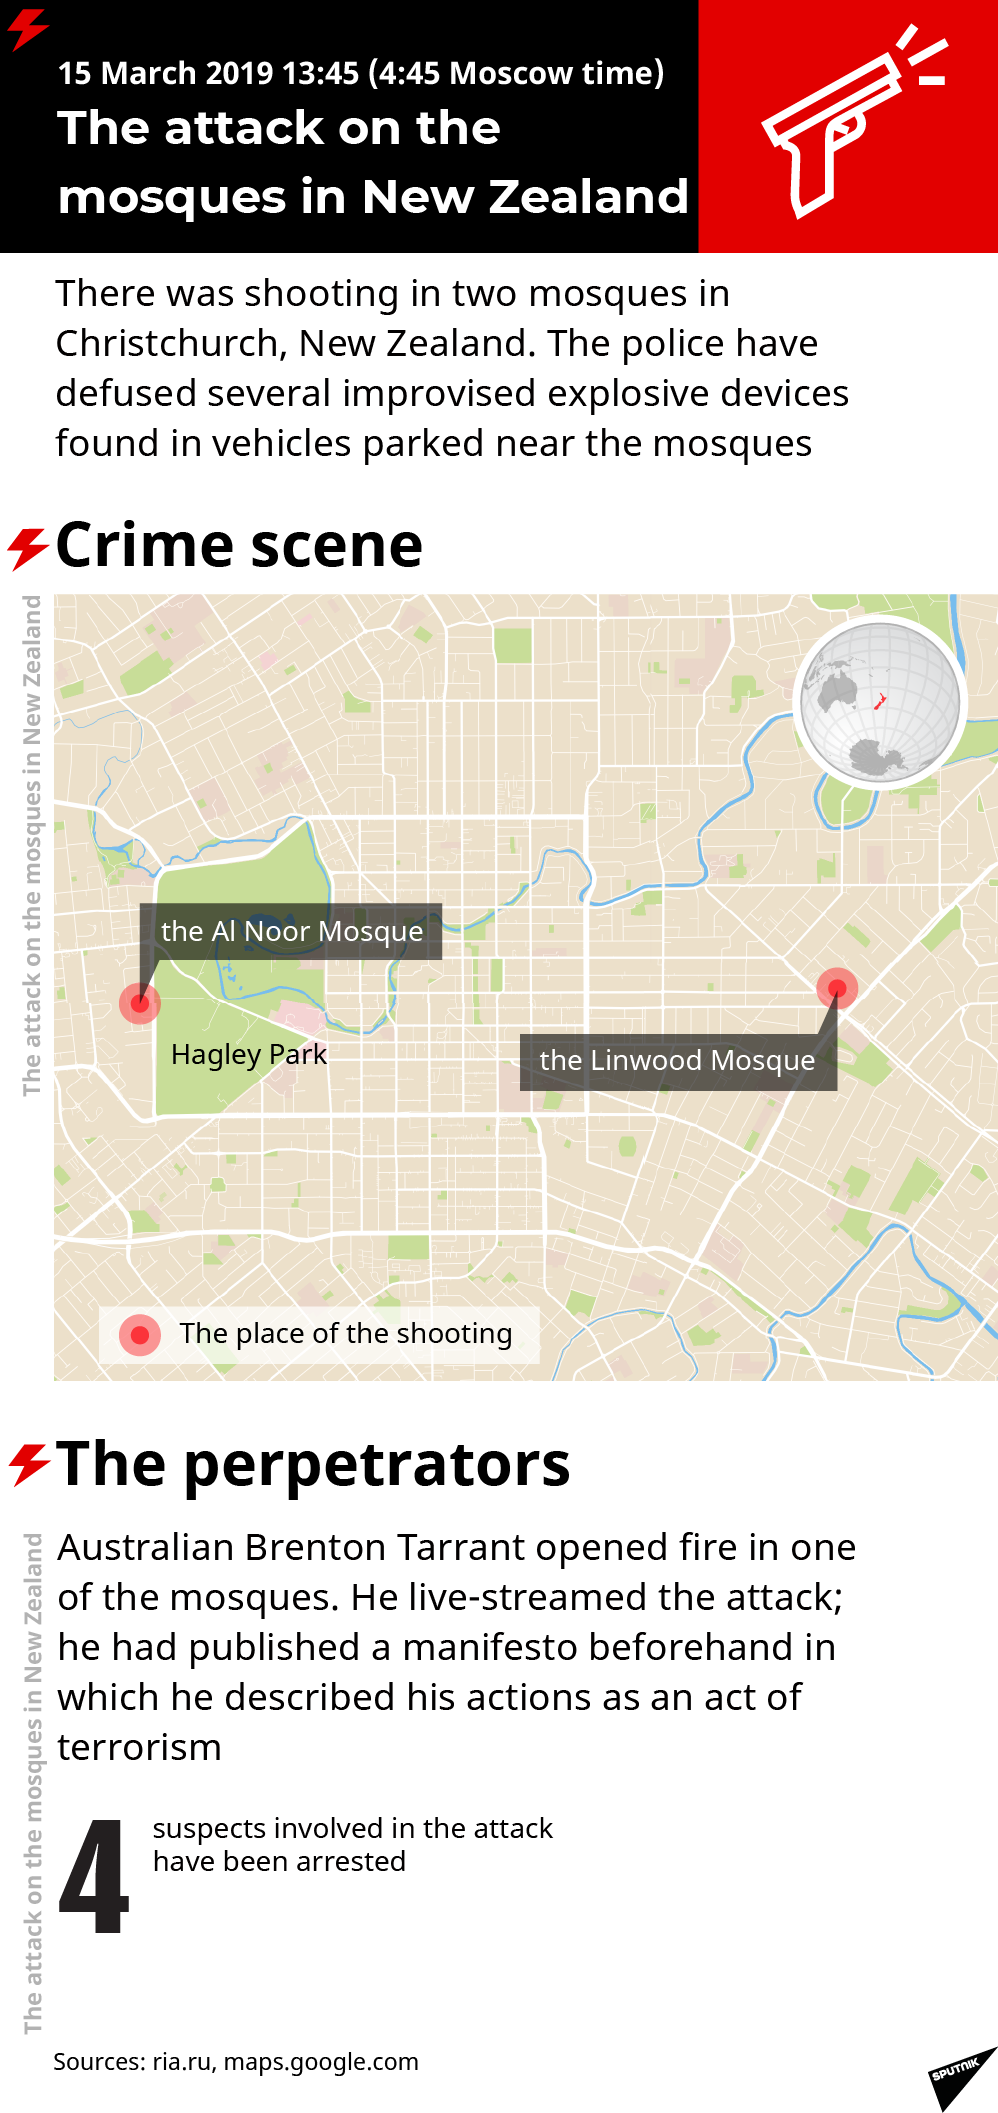 Attack on Mosques in Christchurch, New Zealand